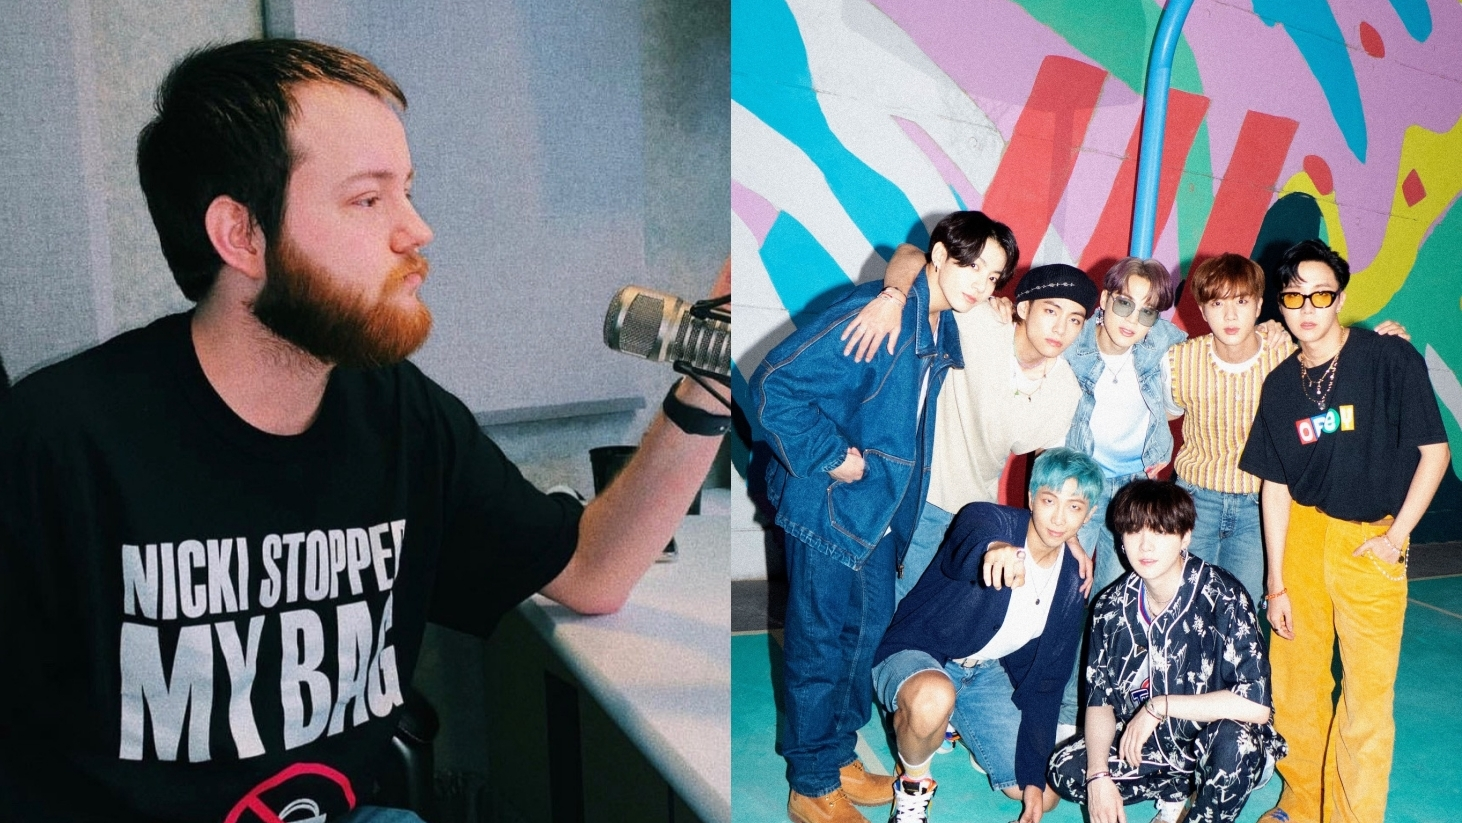 This American Music Writer Was Offered $3K To Give Bad Comments On BTS